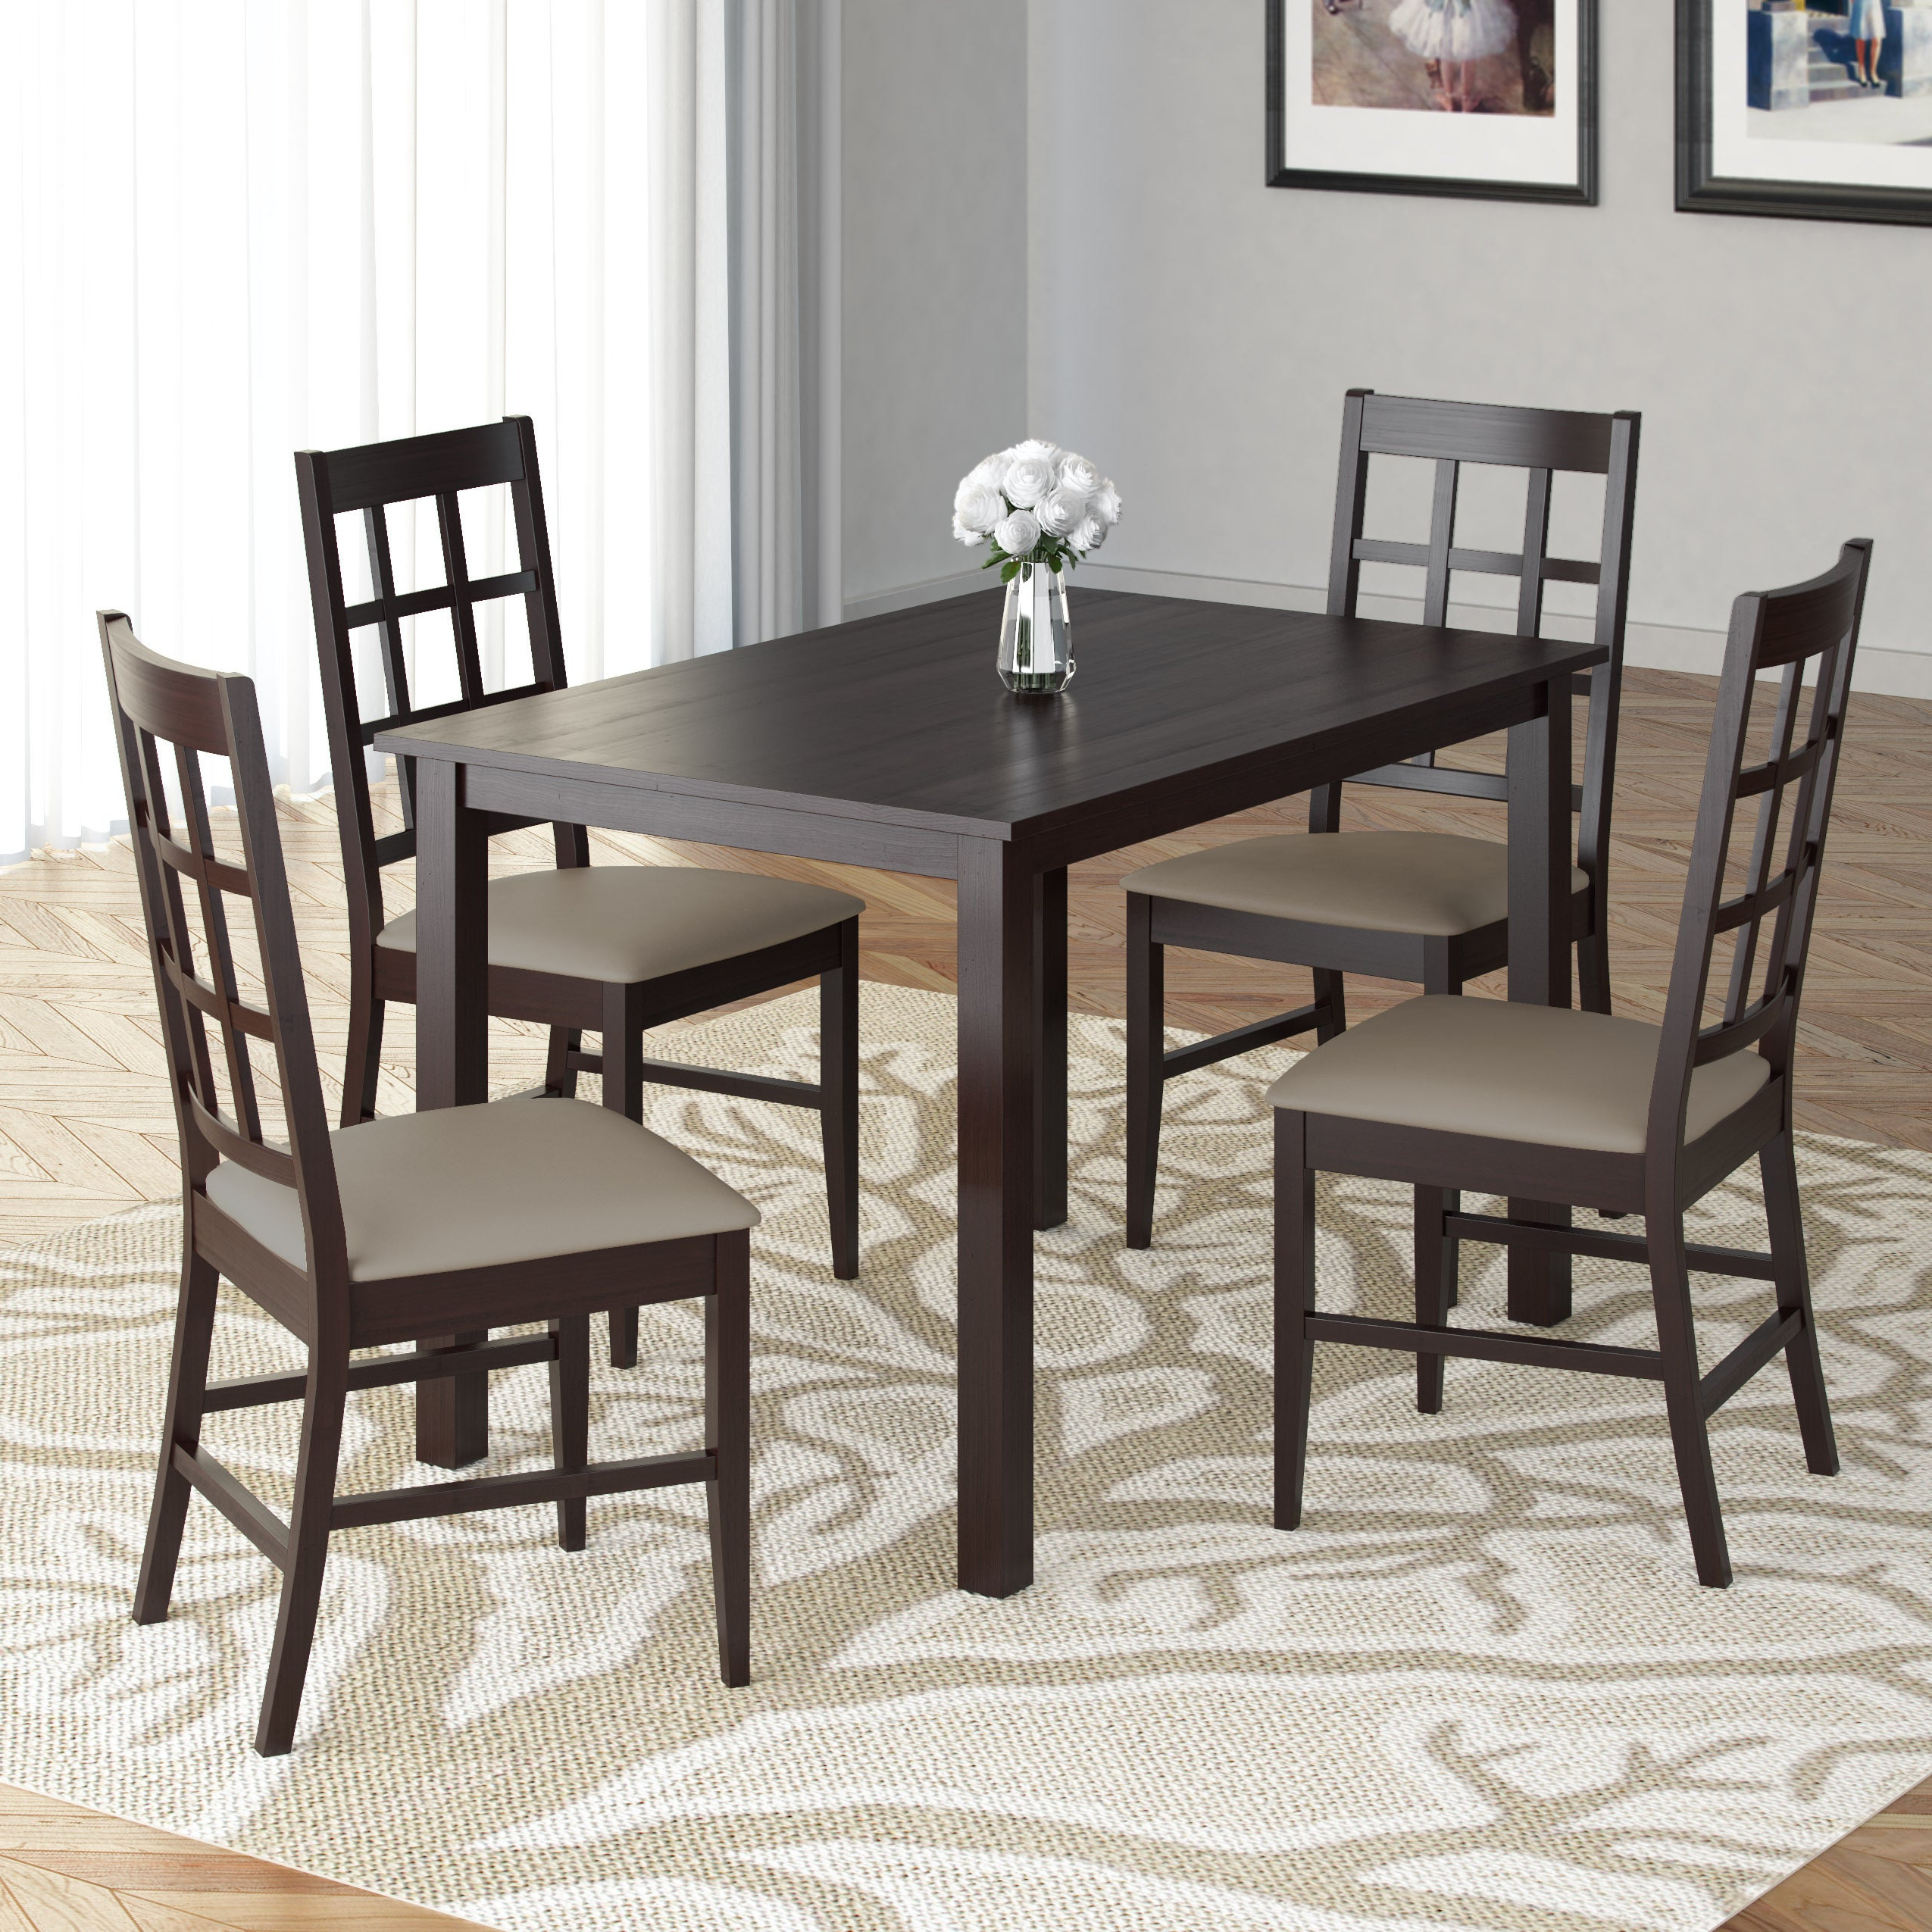 2019 Atwood Transitional Square Dining Tables Pertaining To Atwood 5Pc Dining Set With Taupe Stone Leatherette Seats (View 5 of 25)